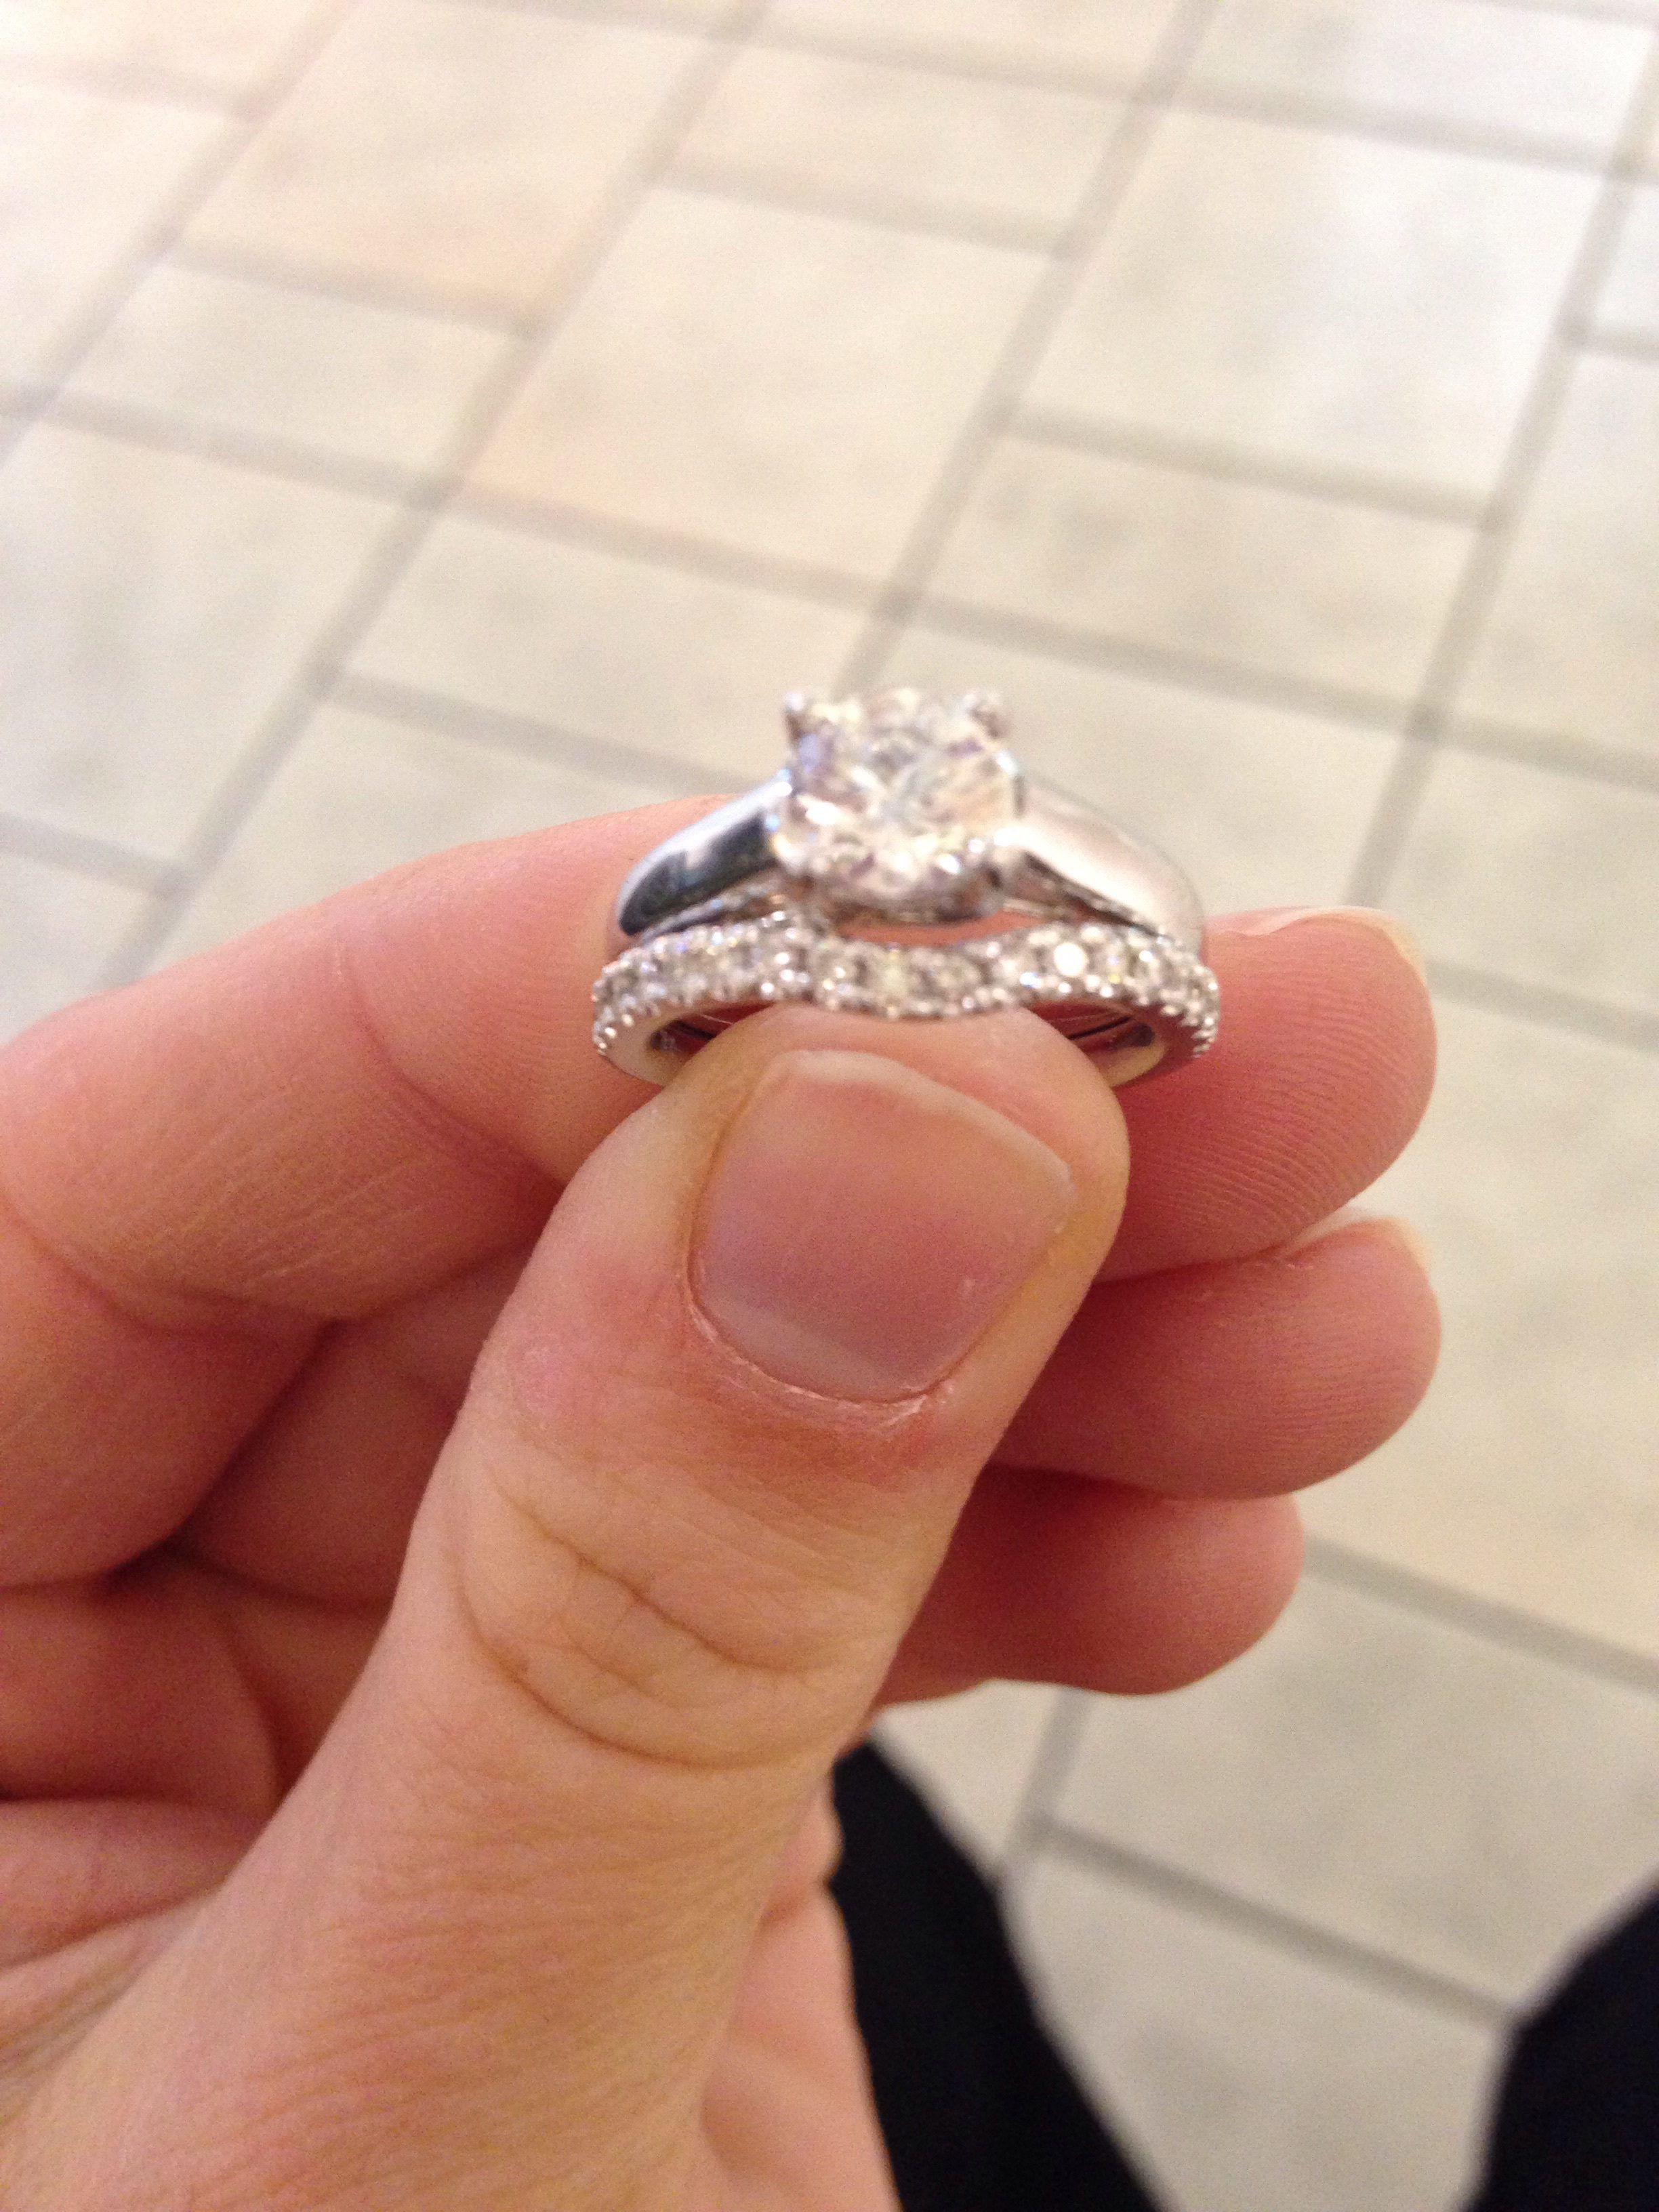 kay jewelers kays jewelry wedding rings at Kay I am extremely upset with my experience We got engaged in November and married a month later in December I Enjoyed picking out my ring